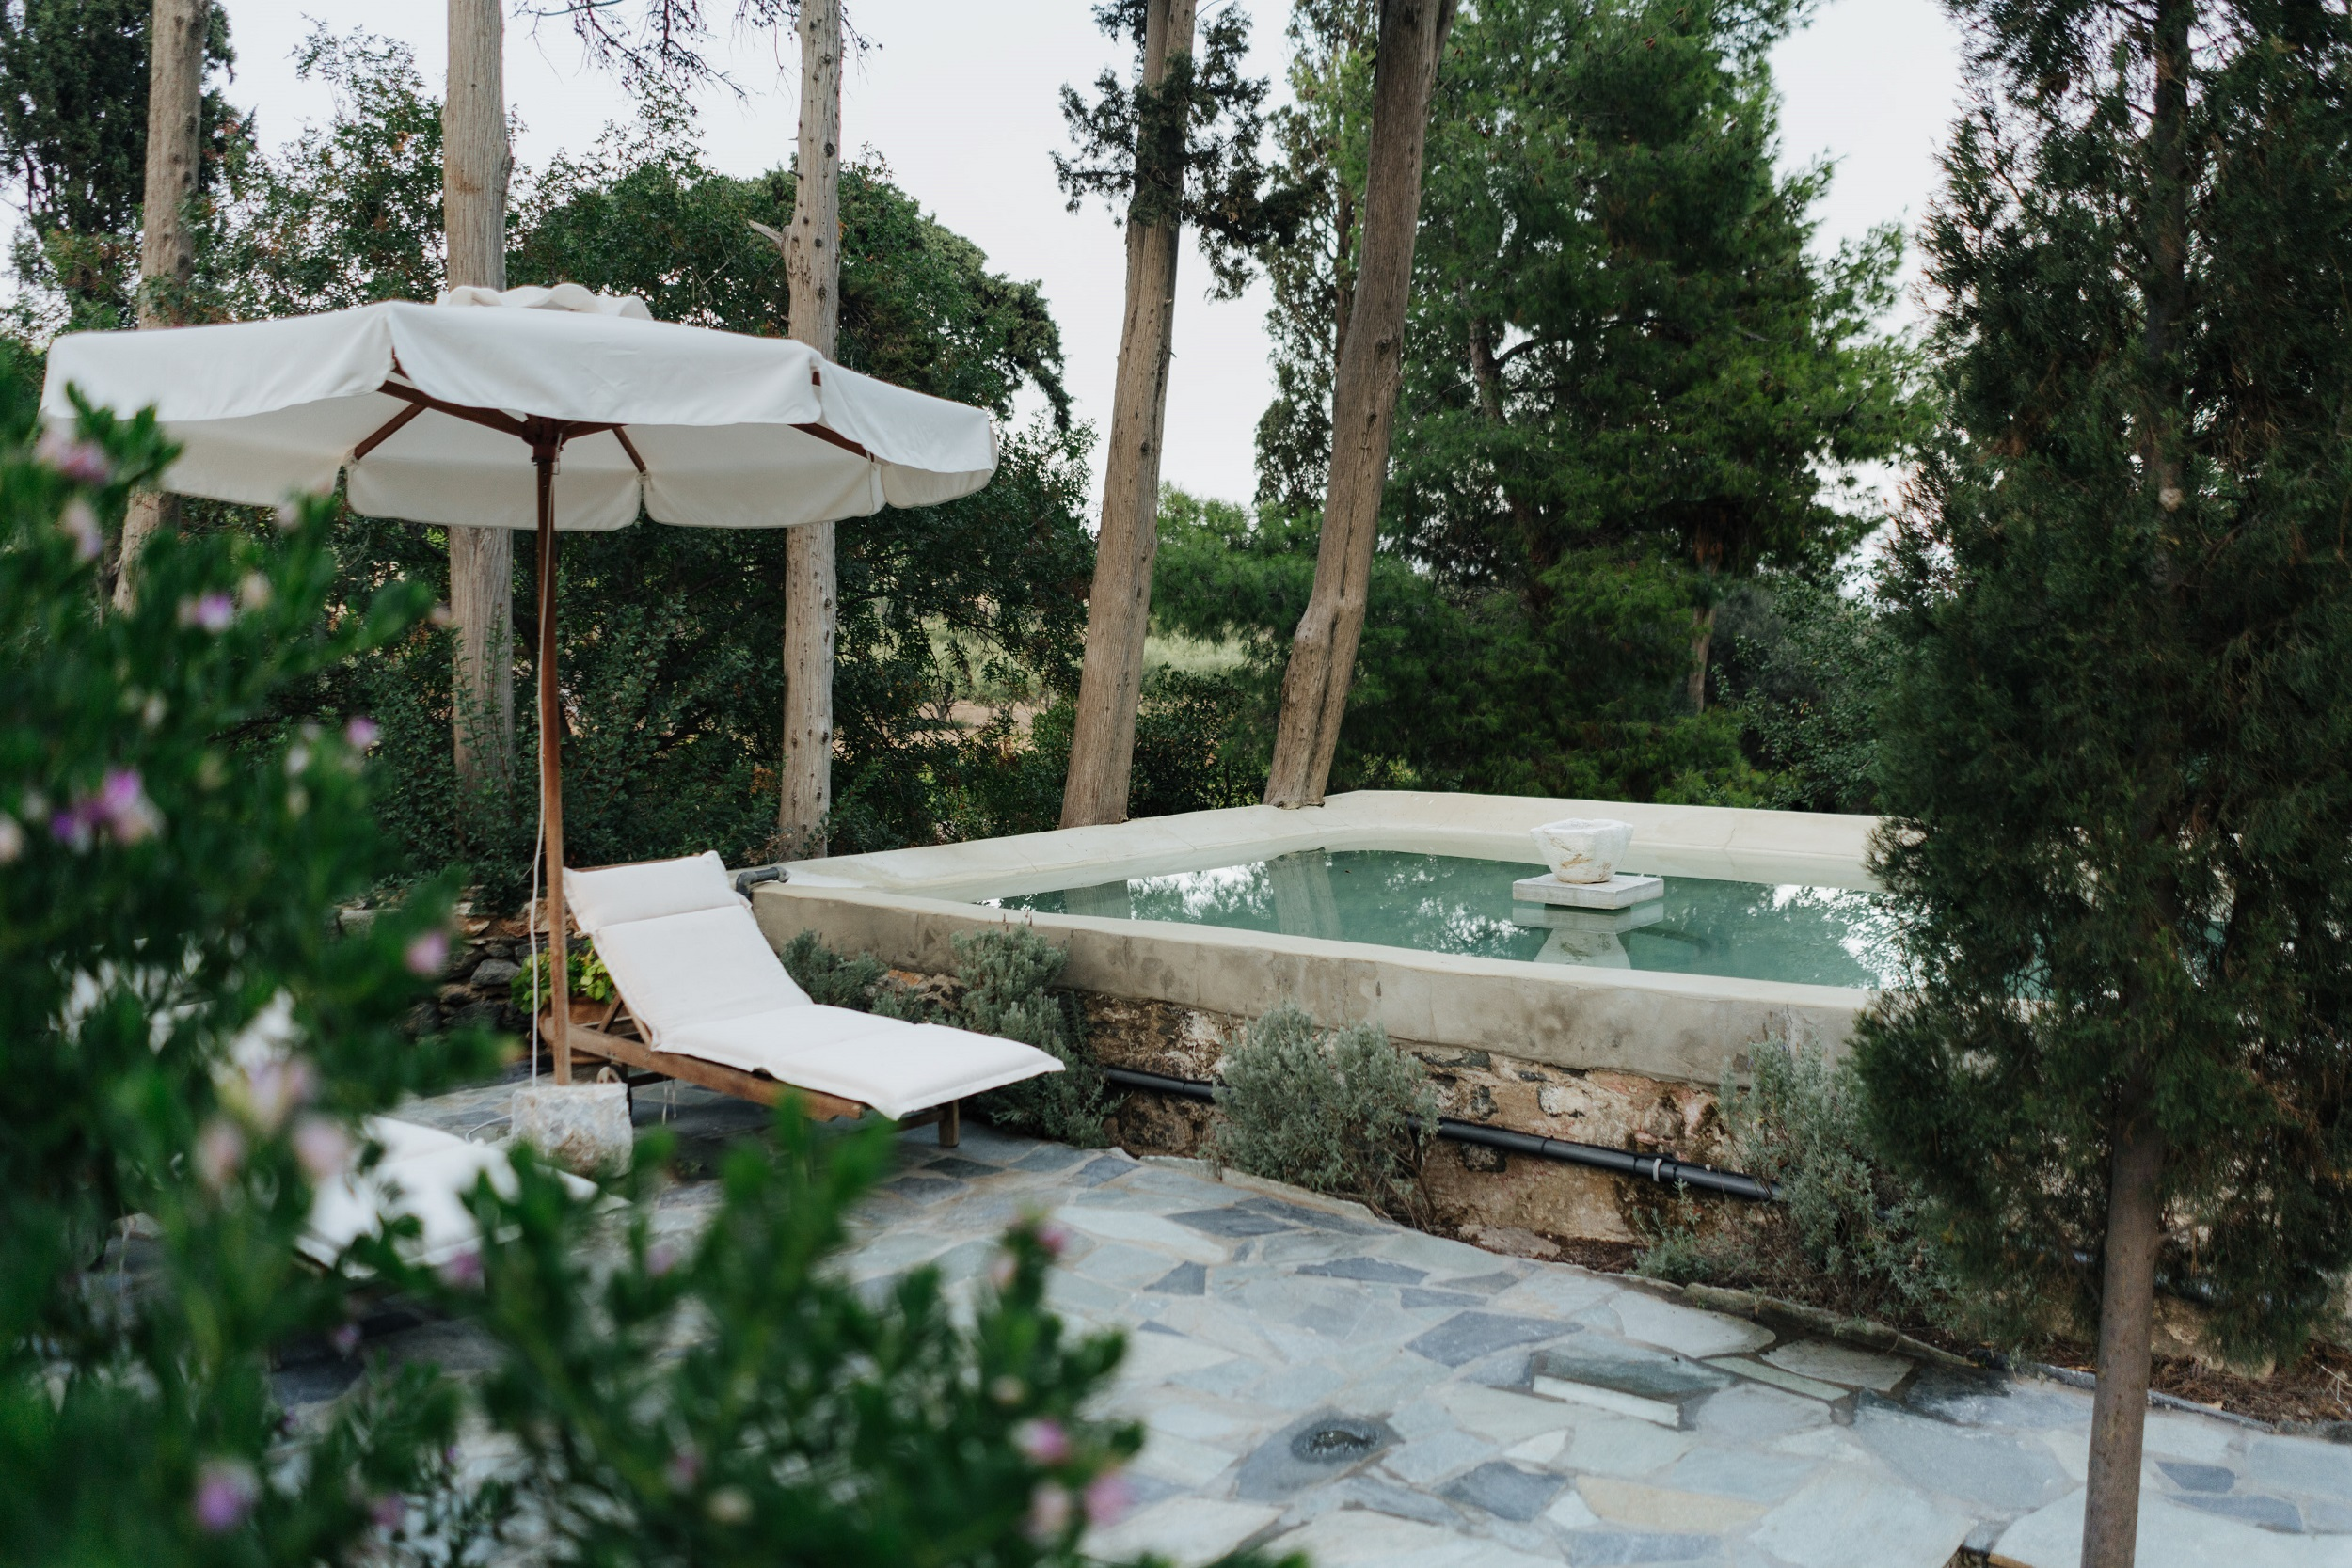 The plunge pool at Manna